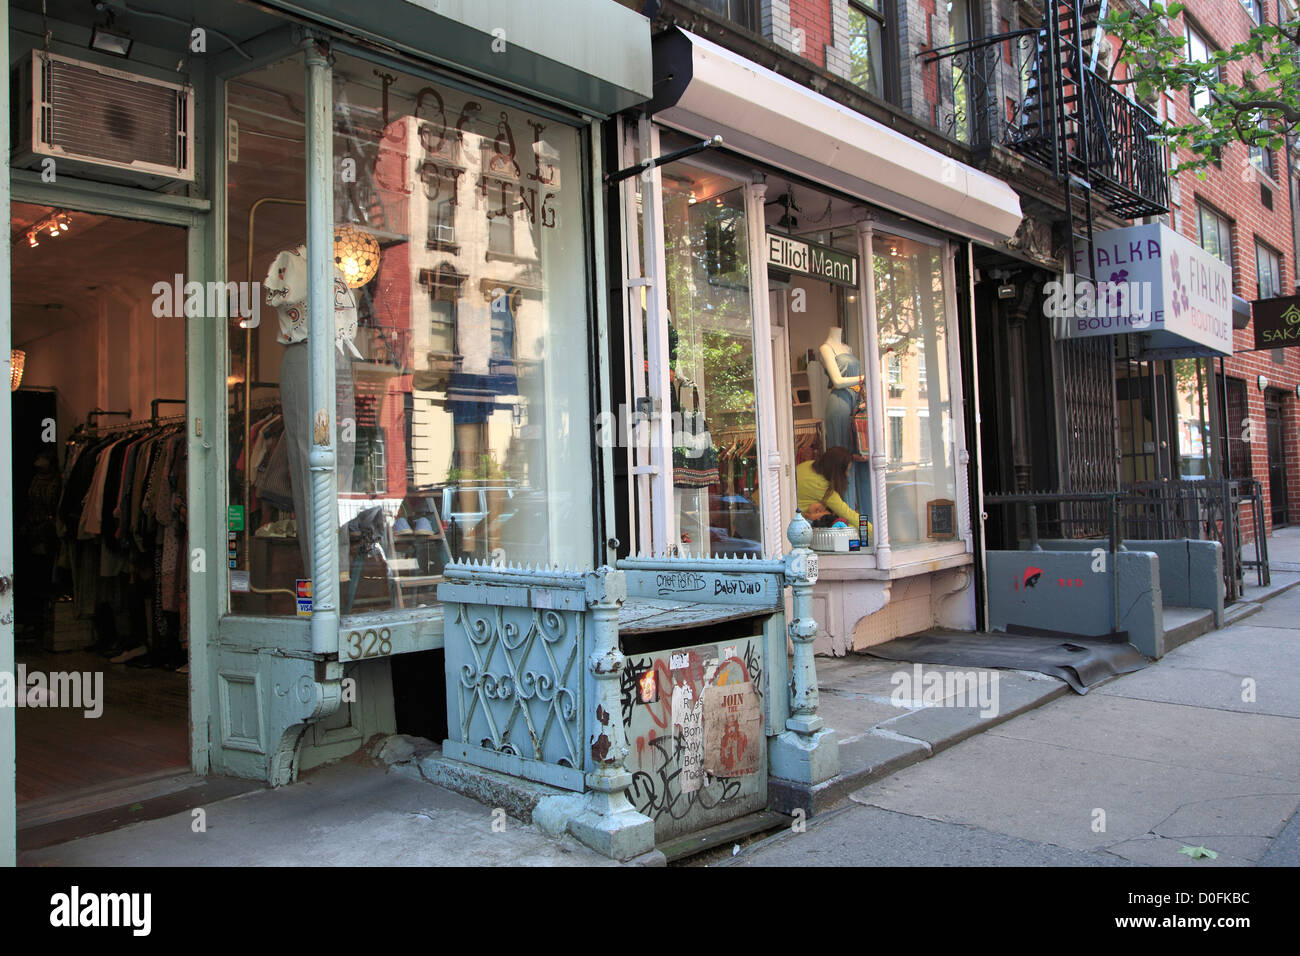 9th Street, Shops, East Village, Manhattan, New York City, USA - Stock Image